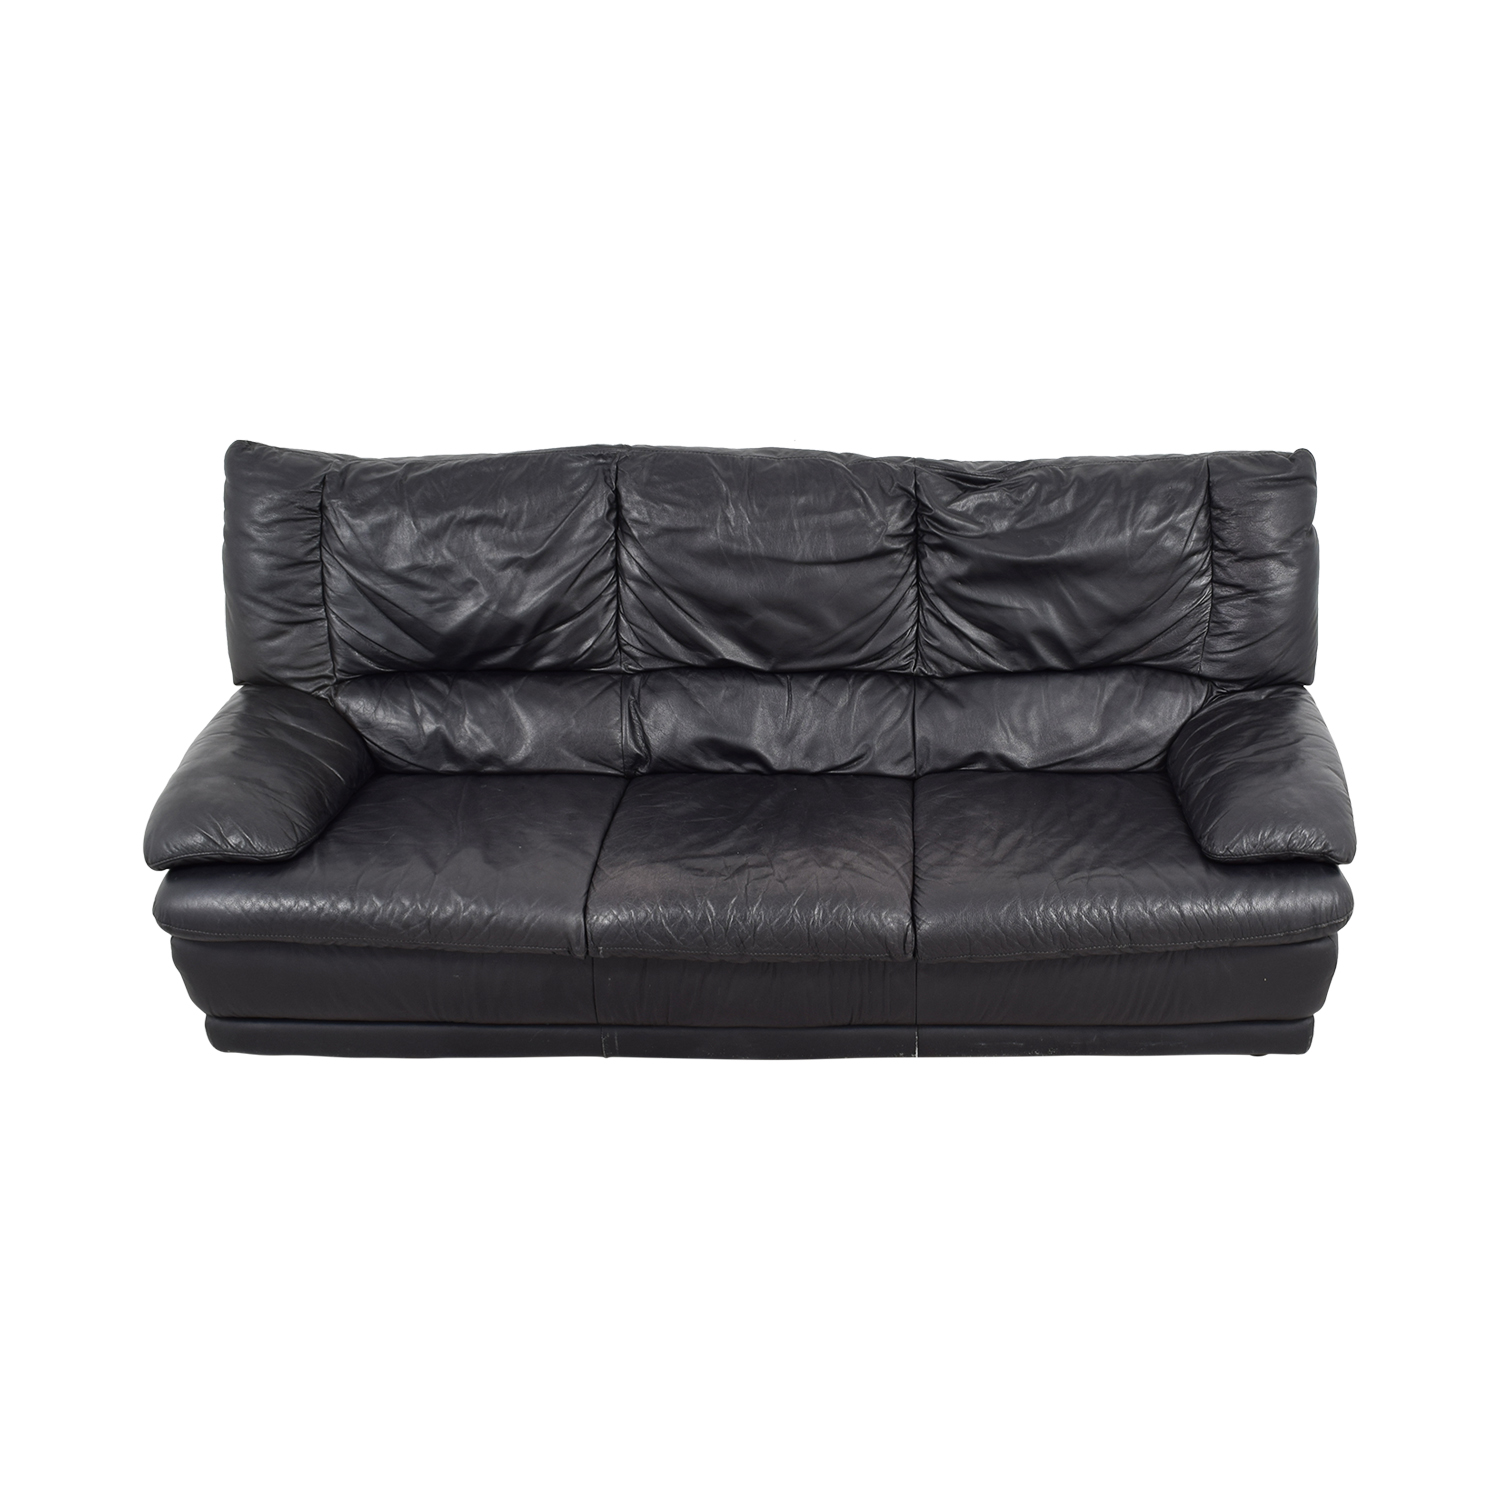 57% OFF - IKEA IKEA Black Leather Sofa / Sofas